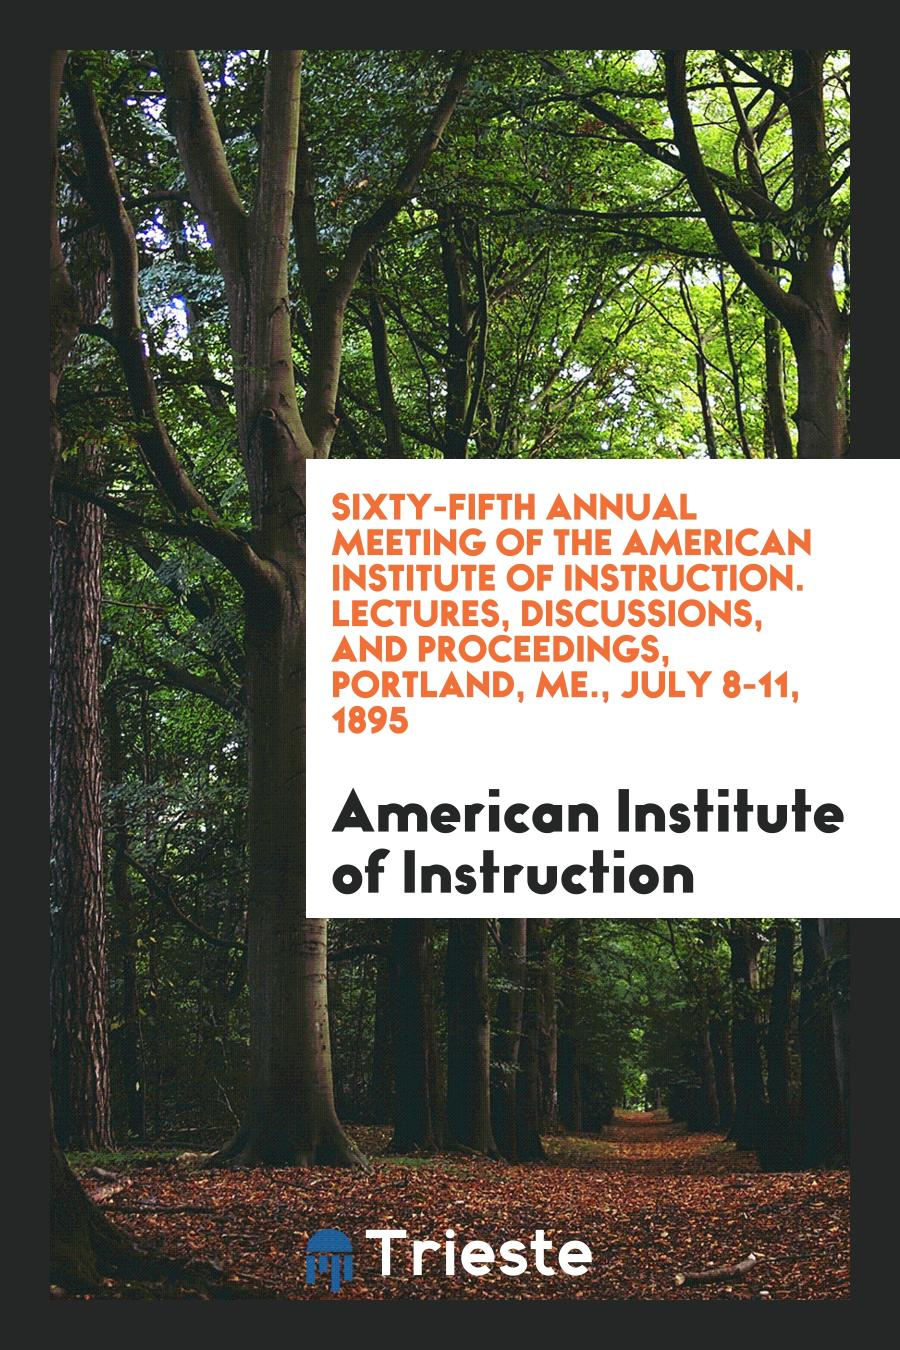 Sixty-Fifth Annual Meeting of the American Institute of Instruction. Lectures, Discussions, and Proceedings, Portland, ME., July 8-11, 1895